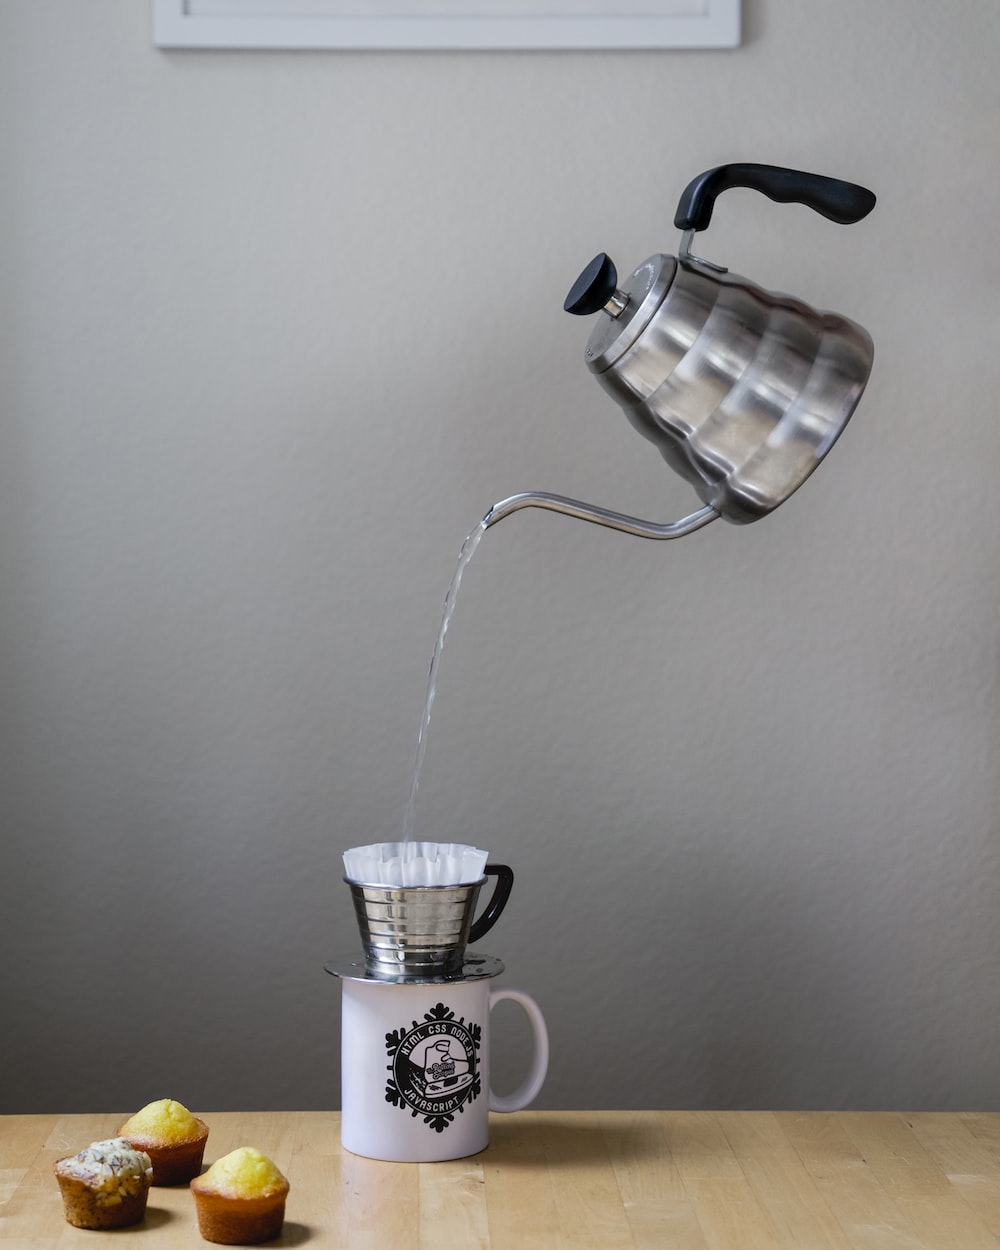 gray kettle pouring